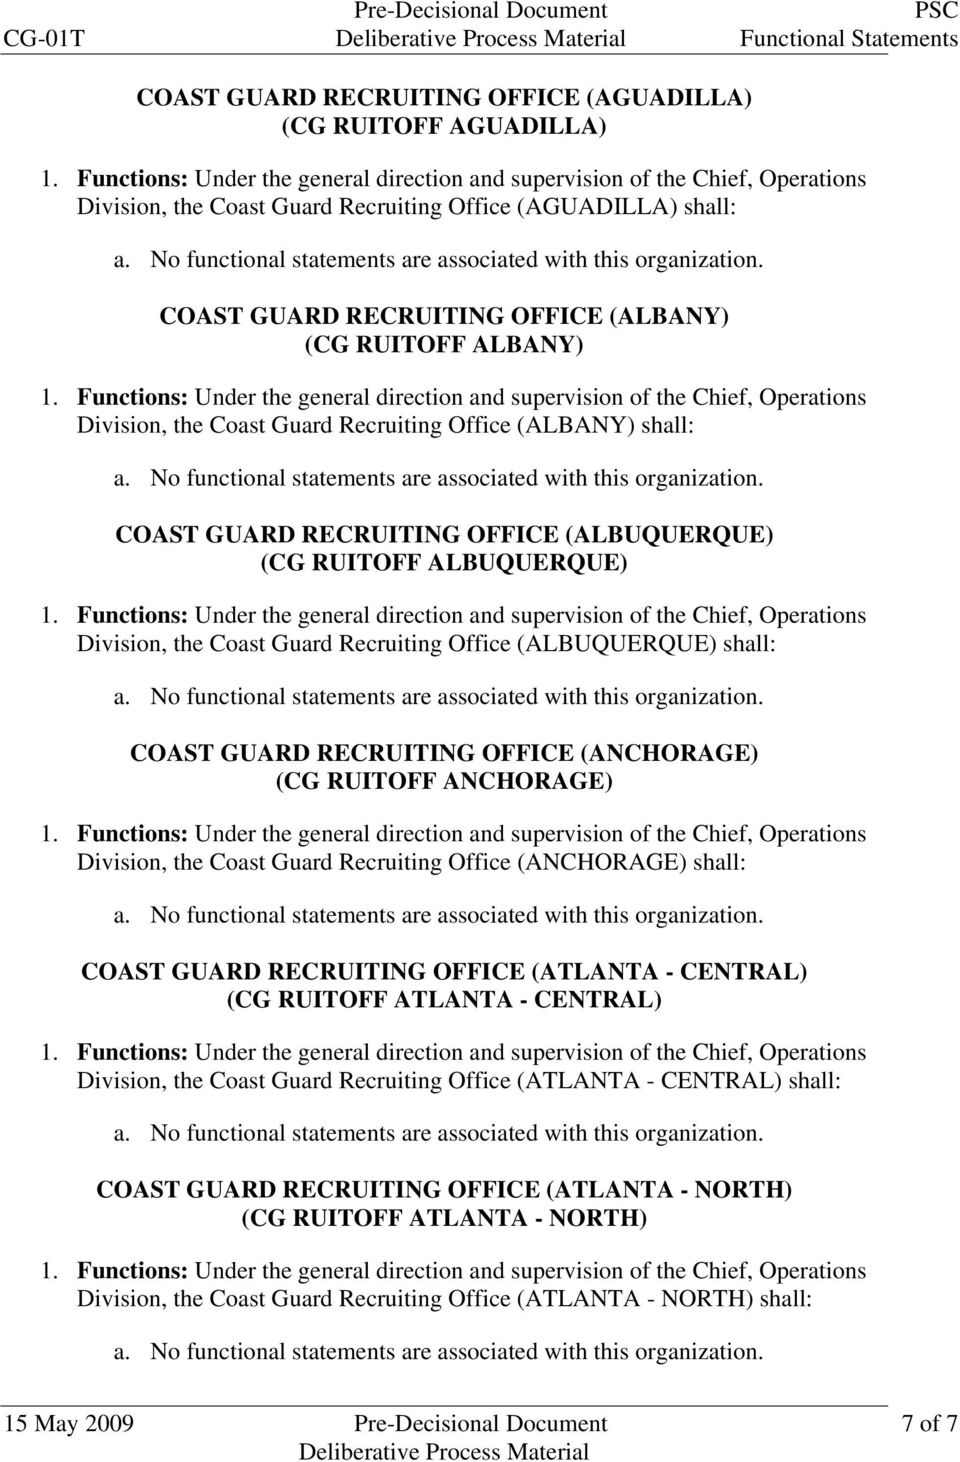 (ALBUQUERQUE) shall: COAST GUARD RECRUITING OFFICE (ANCHORAGE) (CG RUITOFF ANCHORAGE) Division, the Coast Guard Recruiting Office (ANCHORAGE) shall: COAST GUARD RECRUITING OFFICE (ATLANTA - CENTRAL)